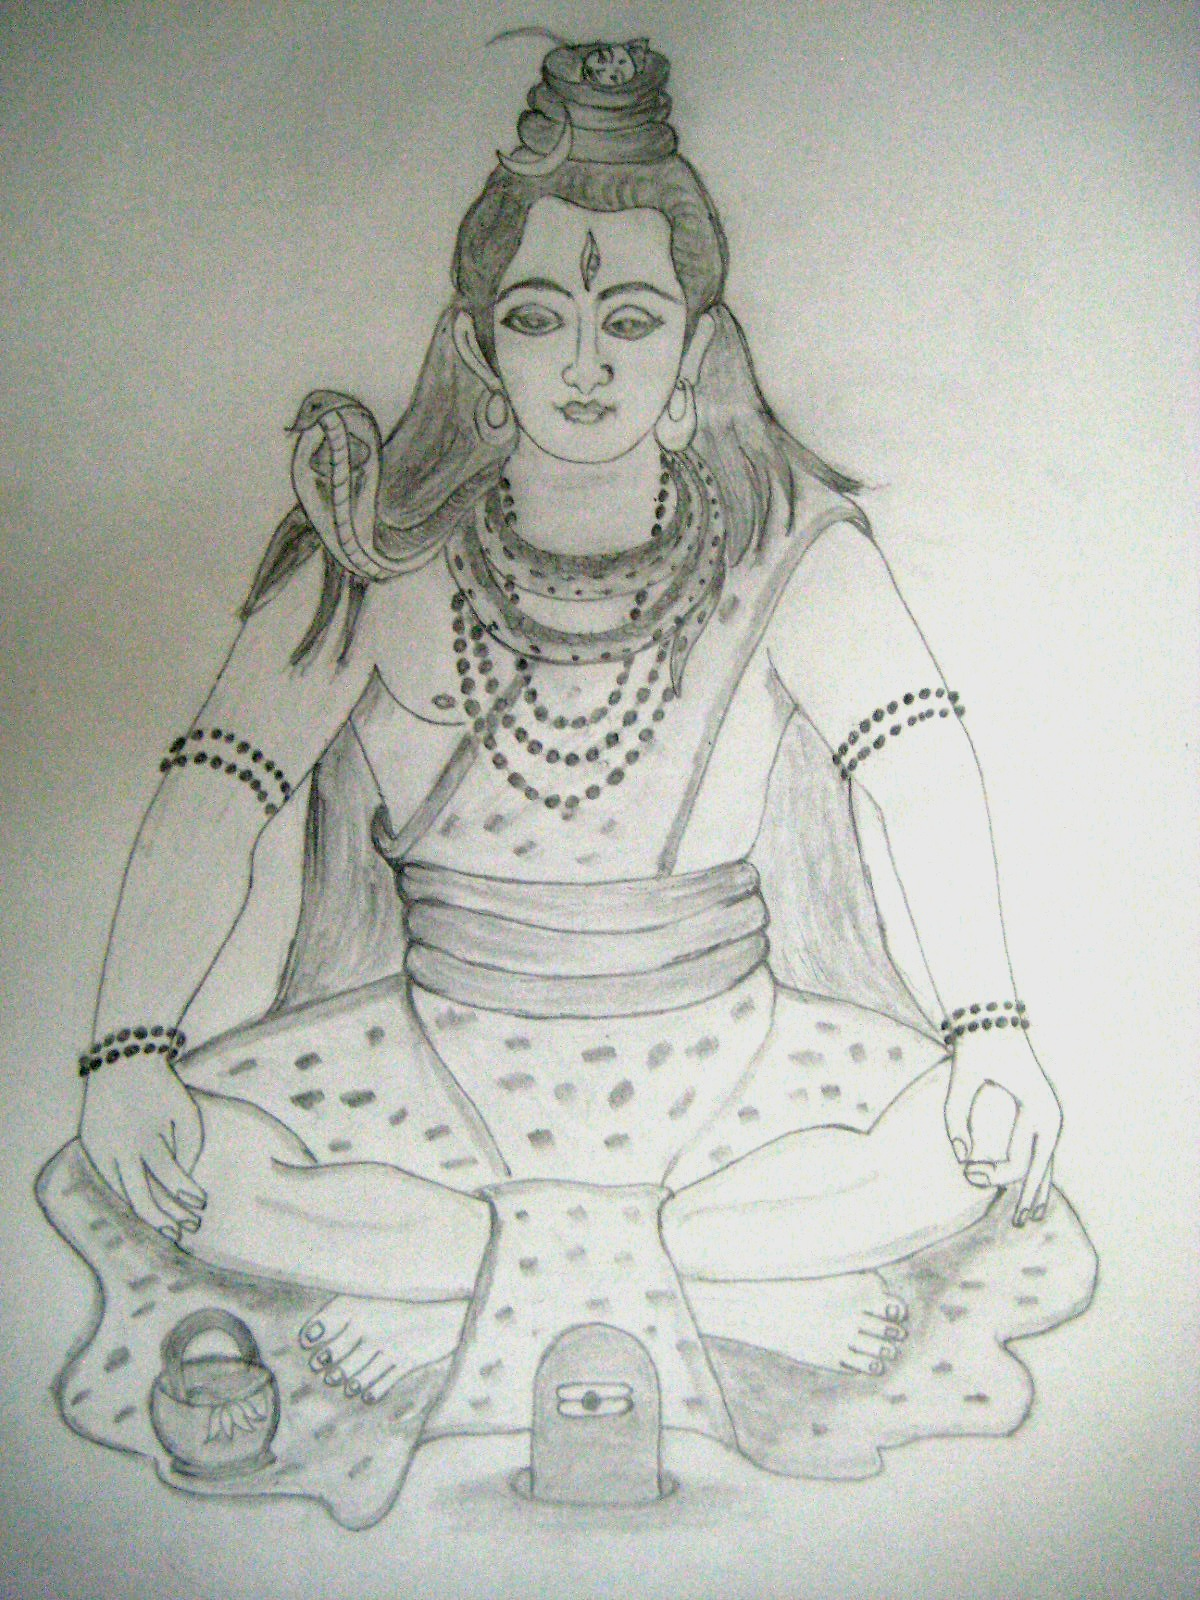 Pencil Sketch Of God Shiva Pencildrawing2019